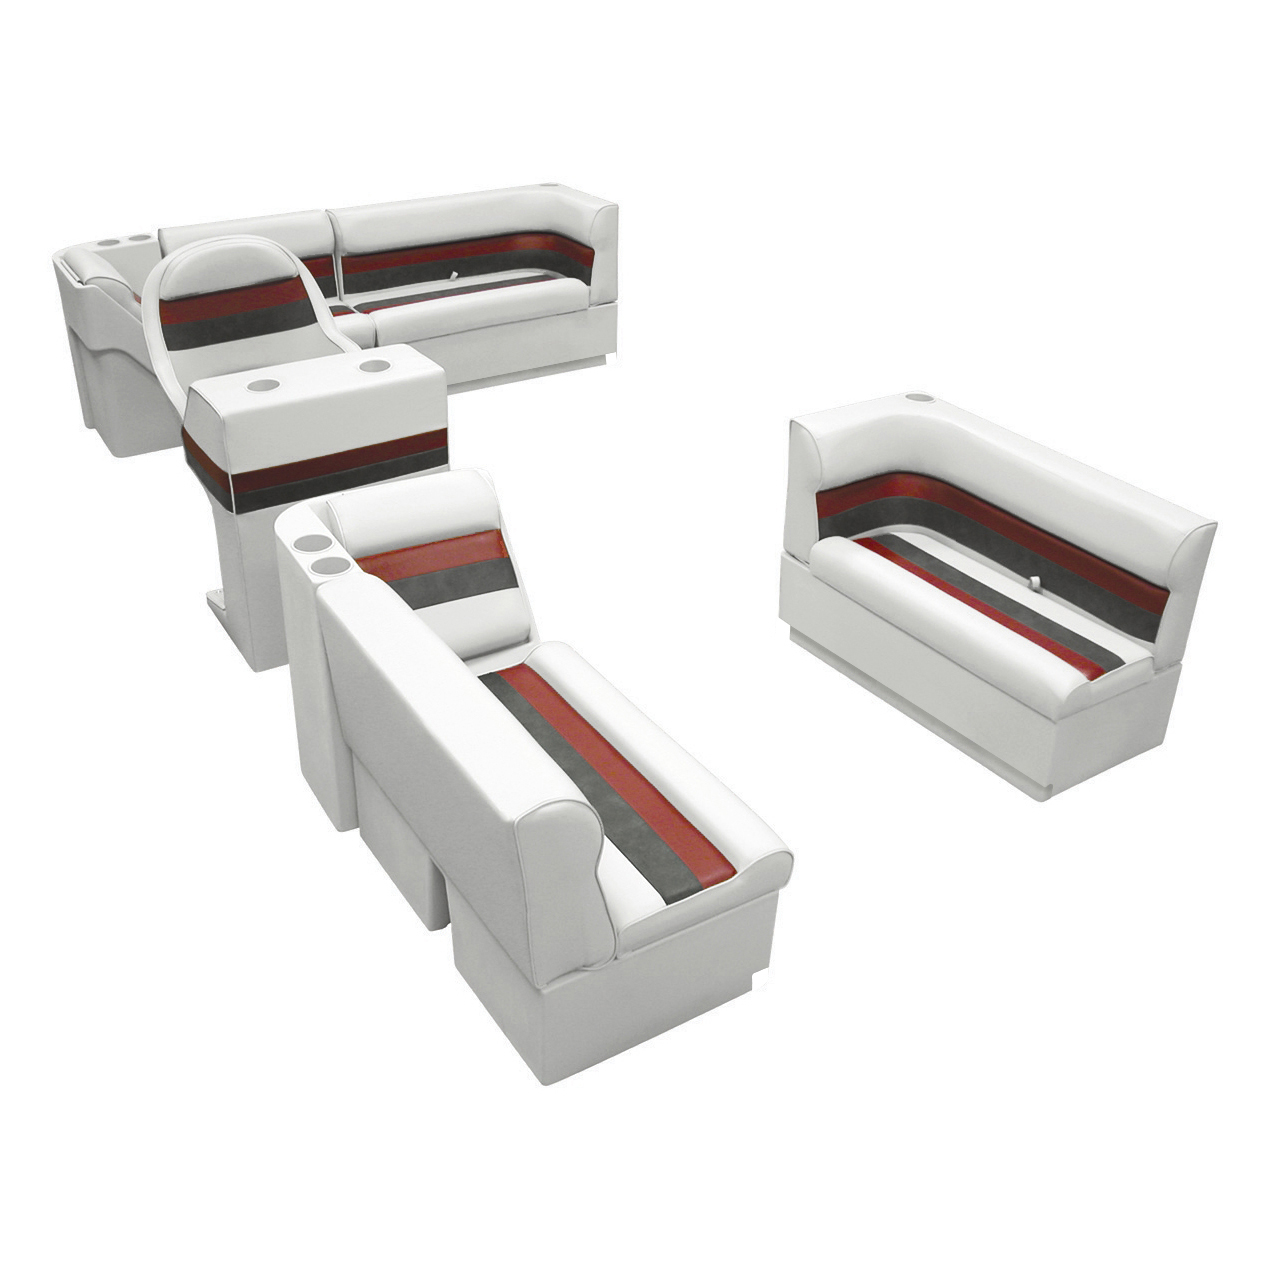 Deluxe Pontoon Furniture w/Toe Kick Base, Complete Boat Package A, White/Red/Cha